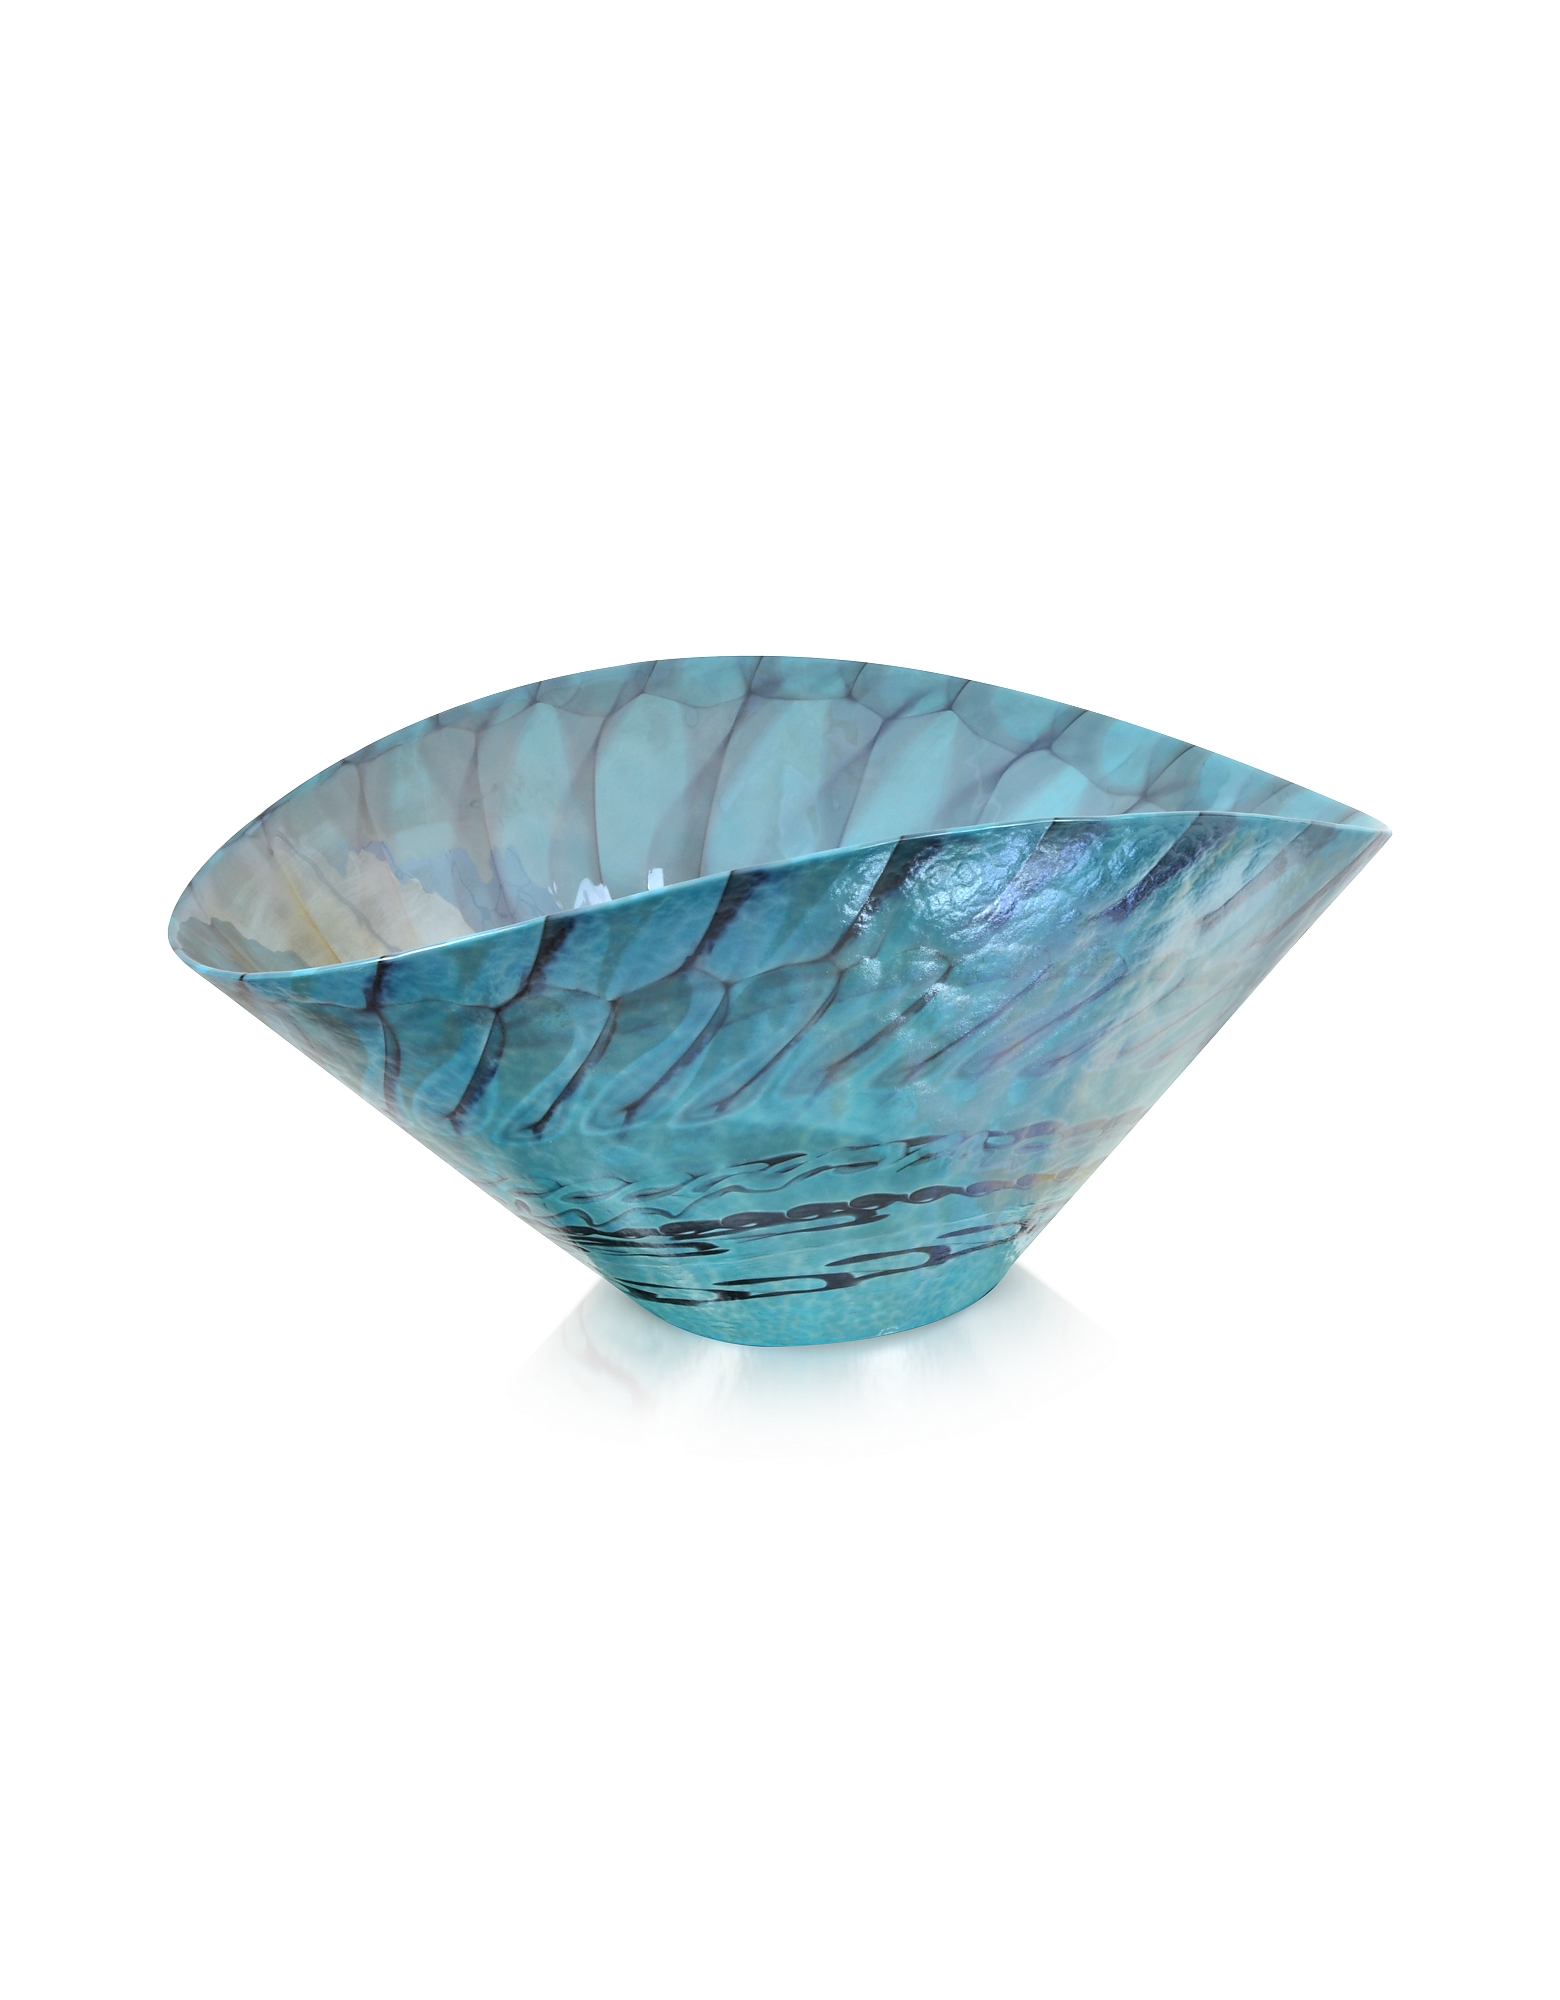 Yalos Murano Decor & Lighting, Belus - Turquoise Murano Glass Centerpiece